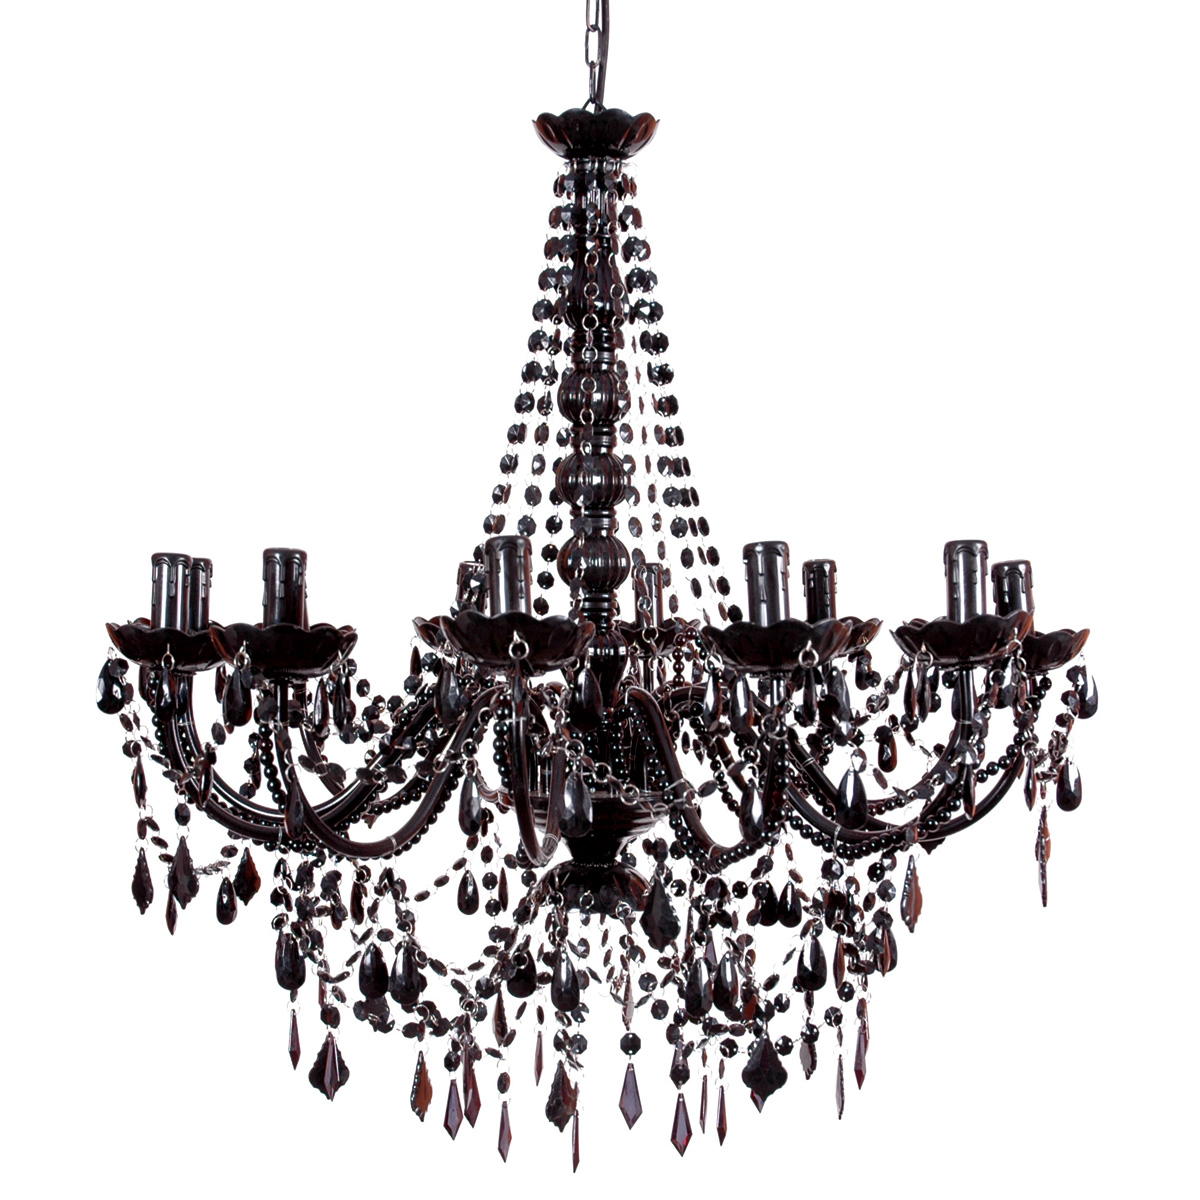 How to choose a chandelier in the bedroom